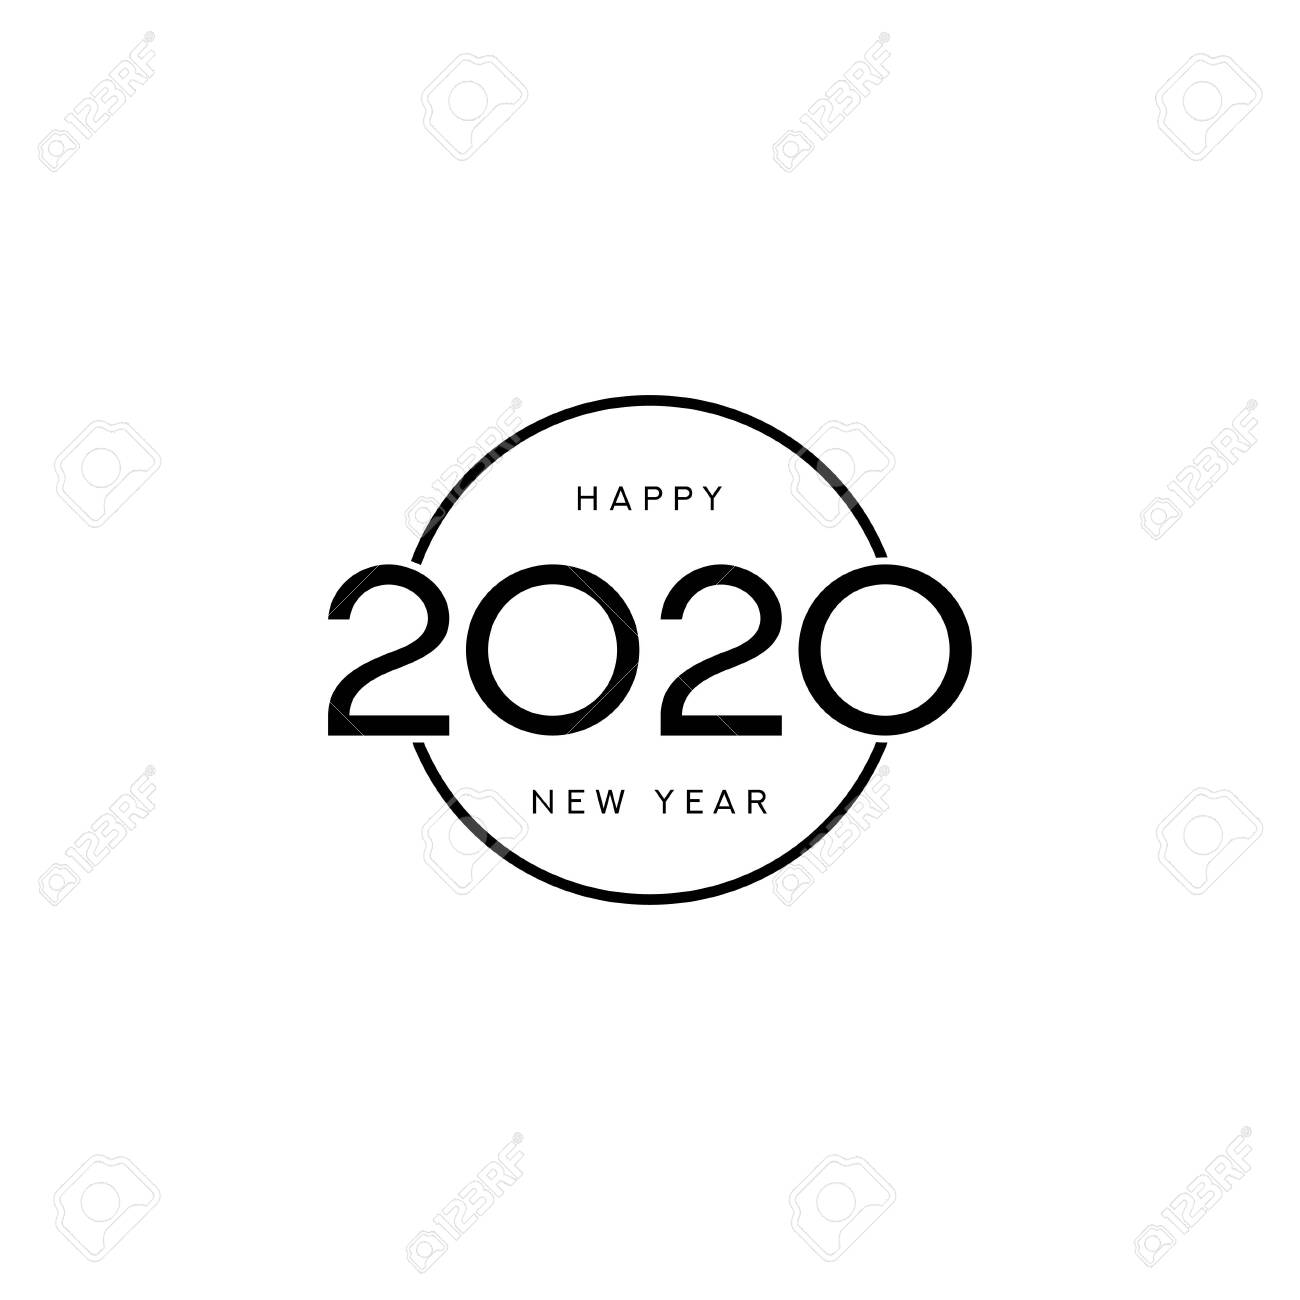 2020 happy new year sign design vector illustration with black royalty free cliparts vectors and stock illustration image 124008829 2020 happy new year sign design vector illustration with black